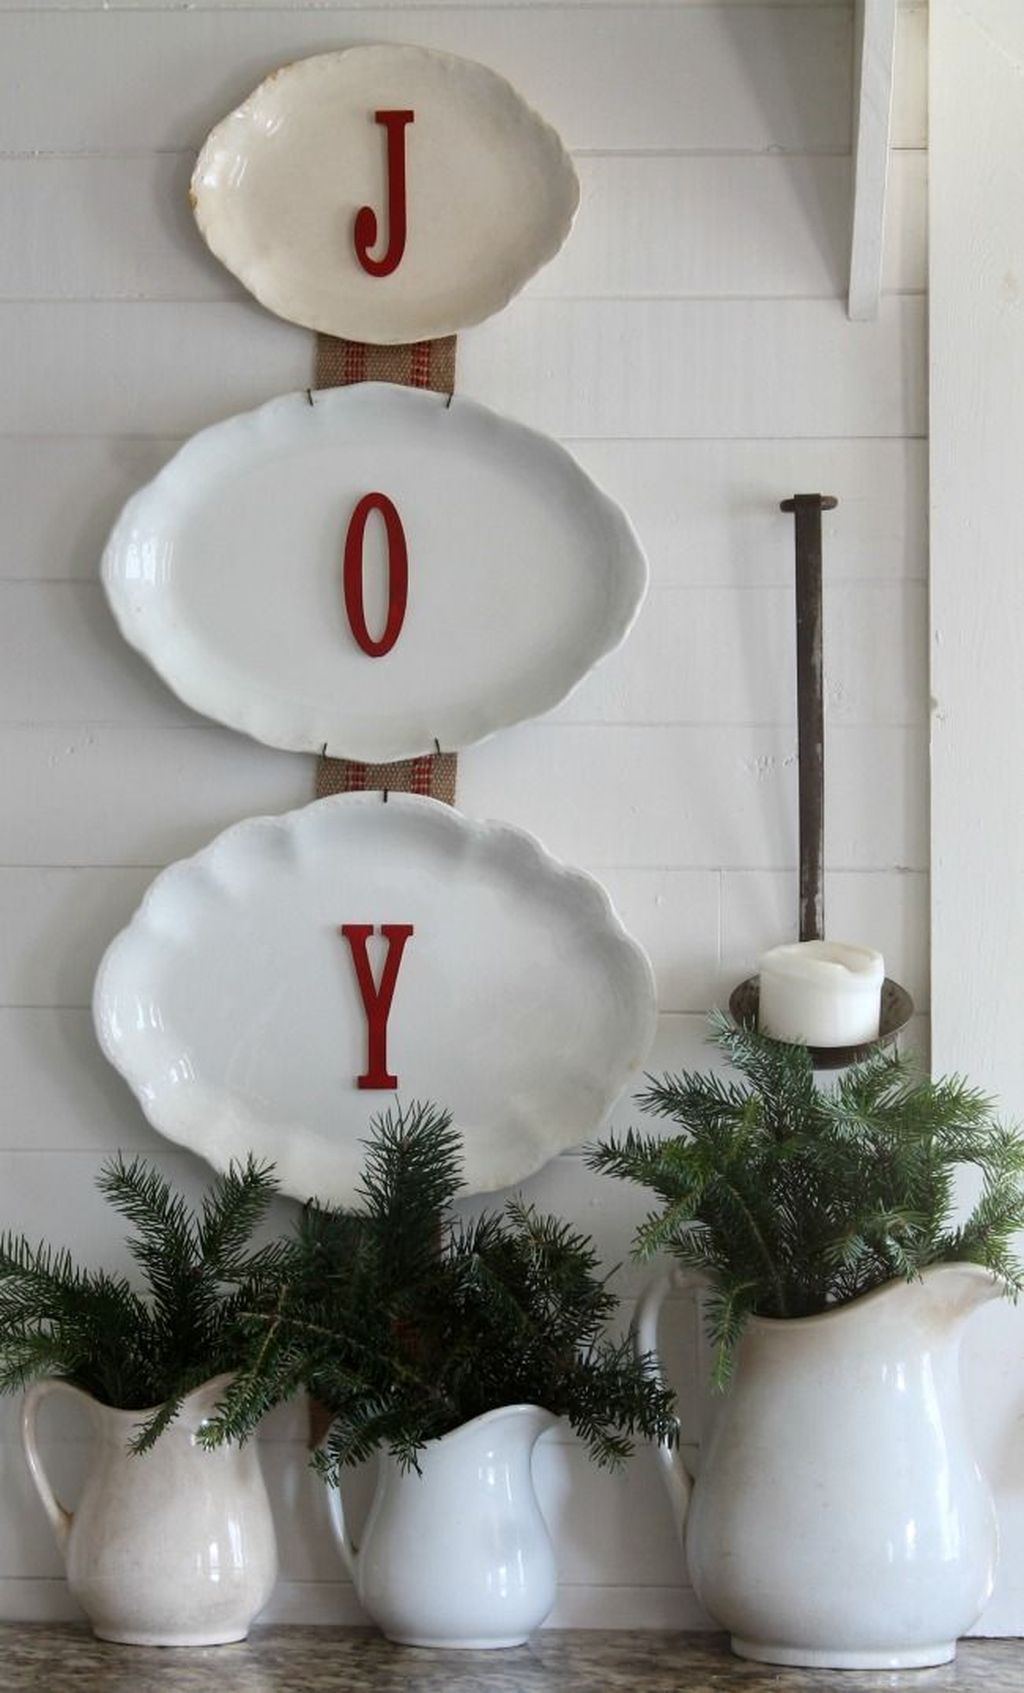 Farmhouse Christmas Wall Decor - JOY Plates